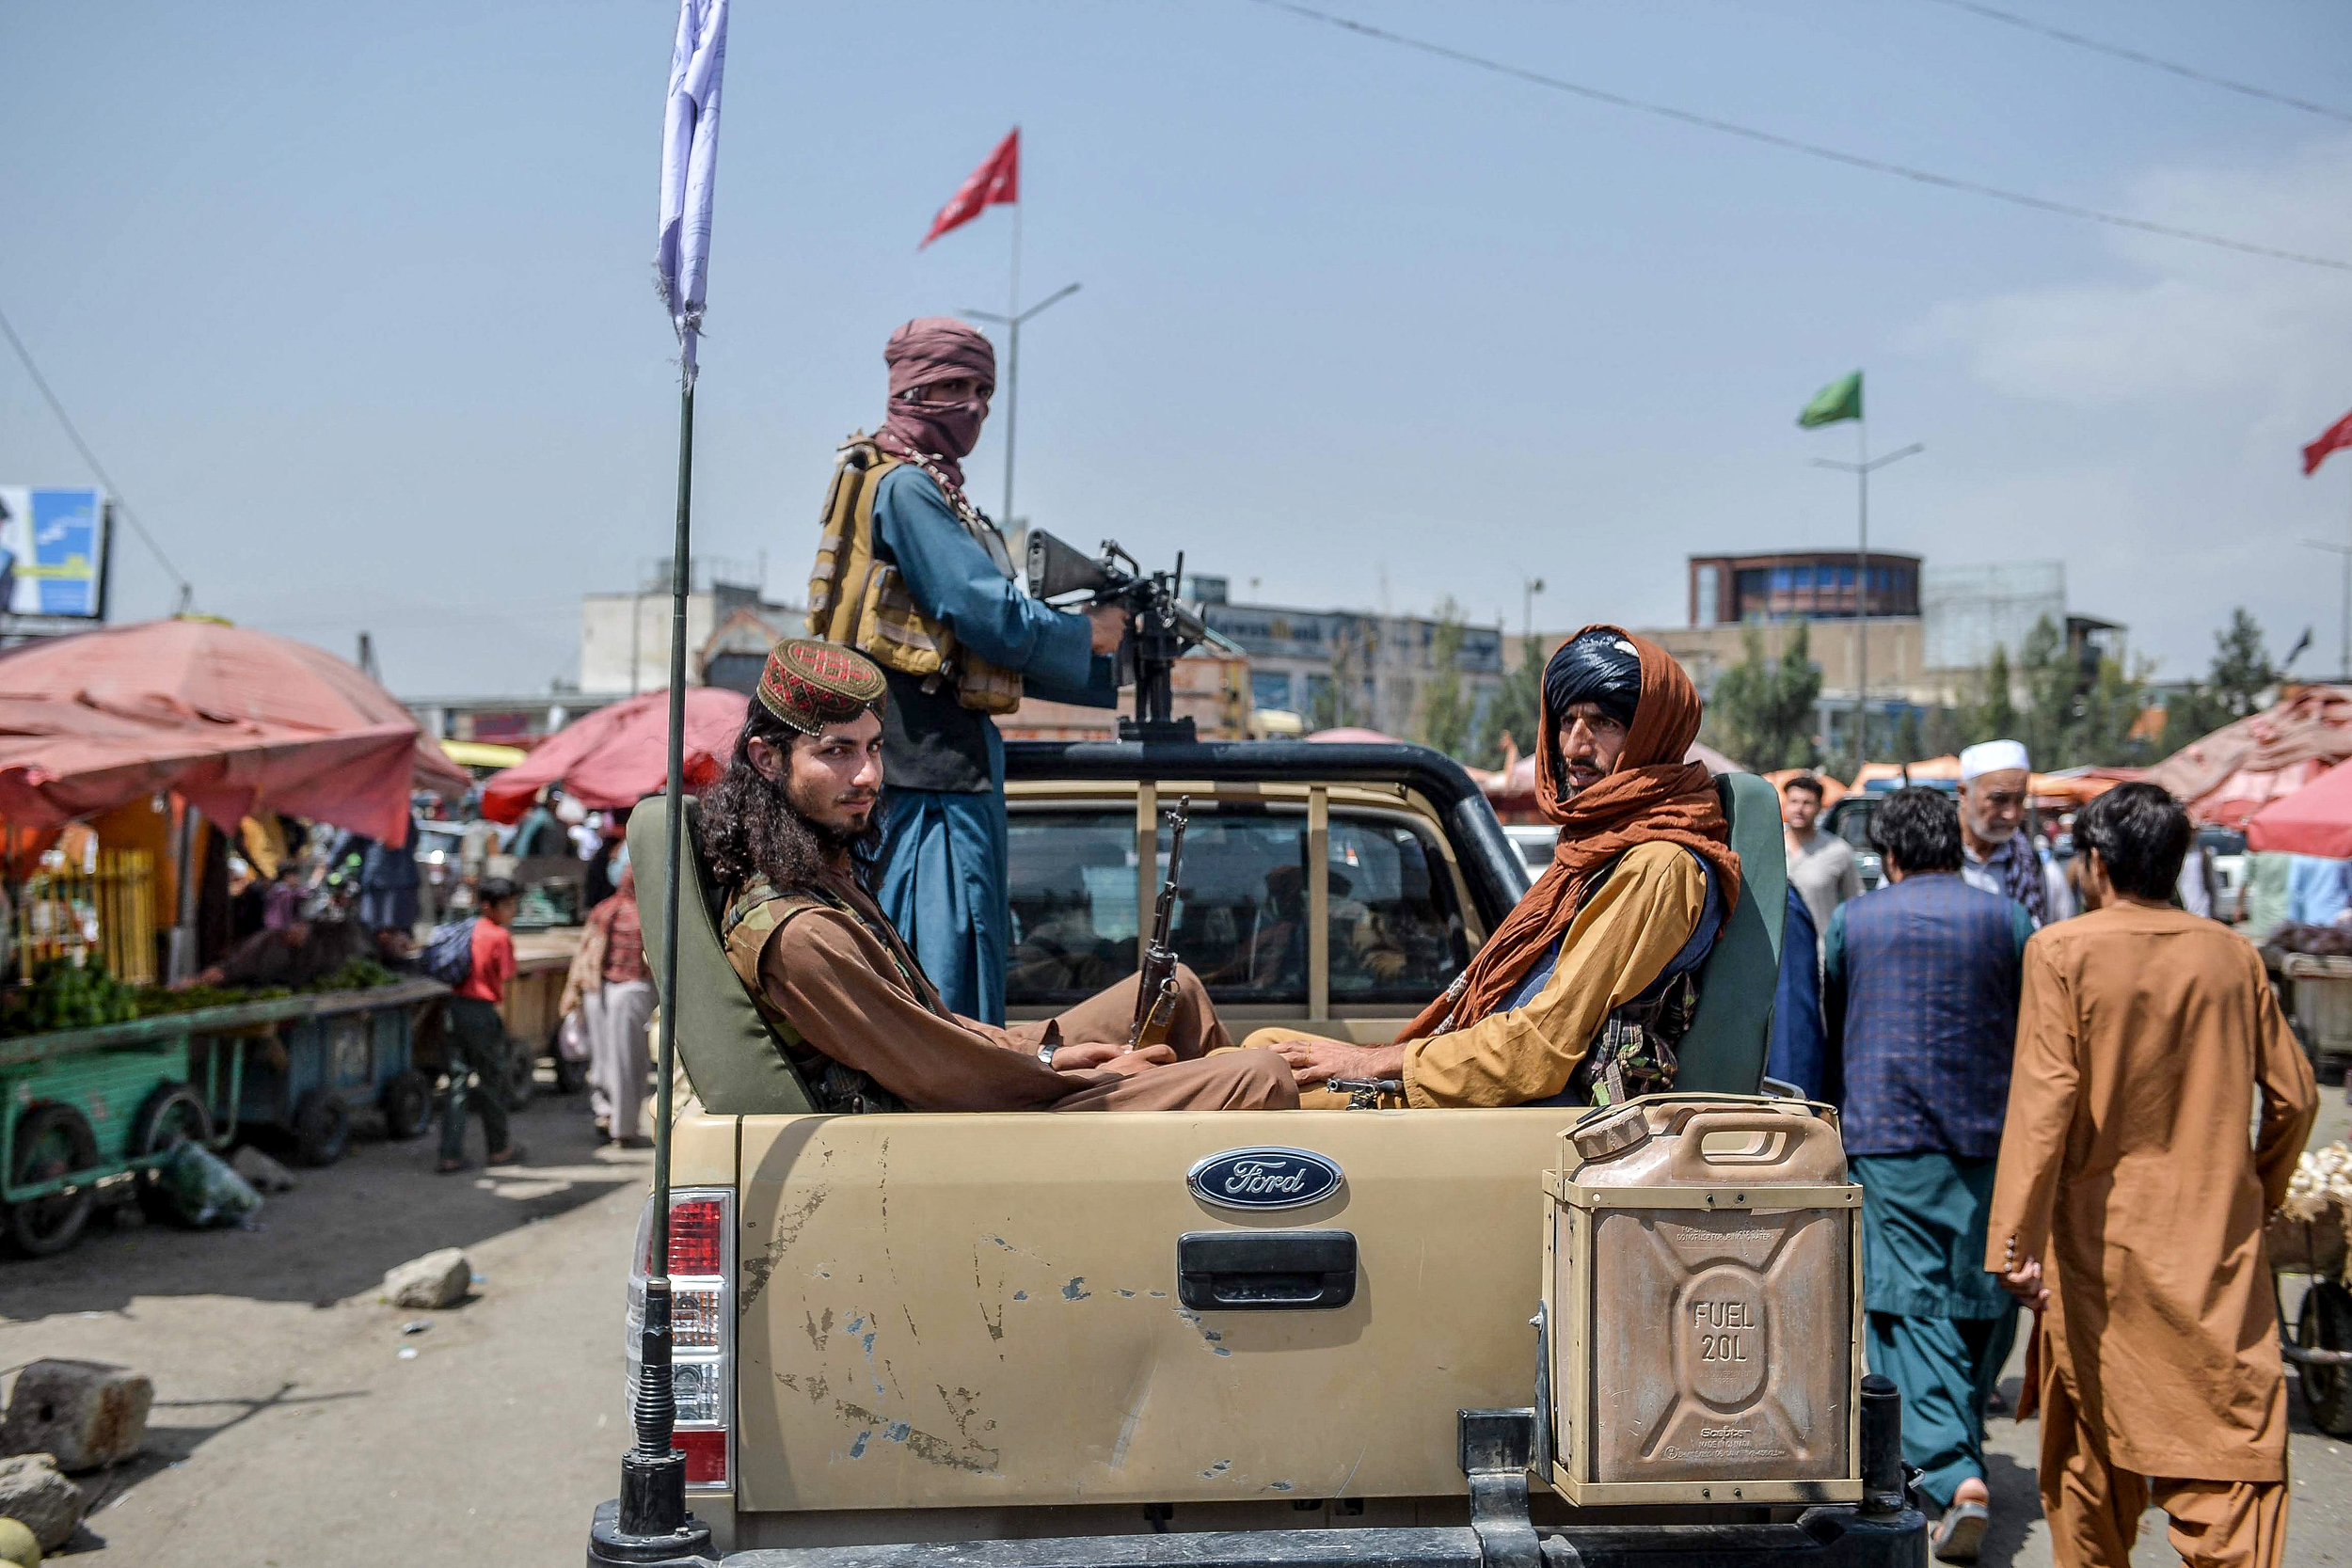 Taliban spokesman says U.S. will not be harmed from Afghan soil